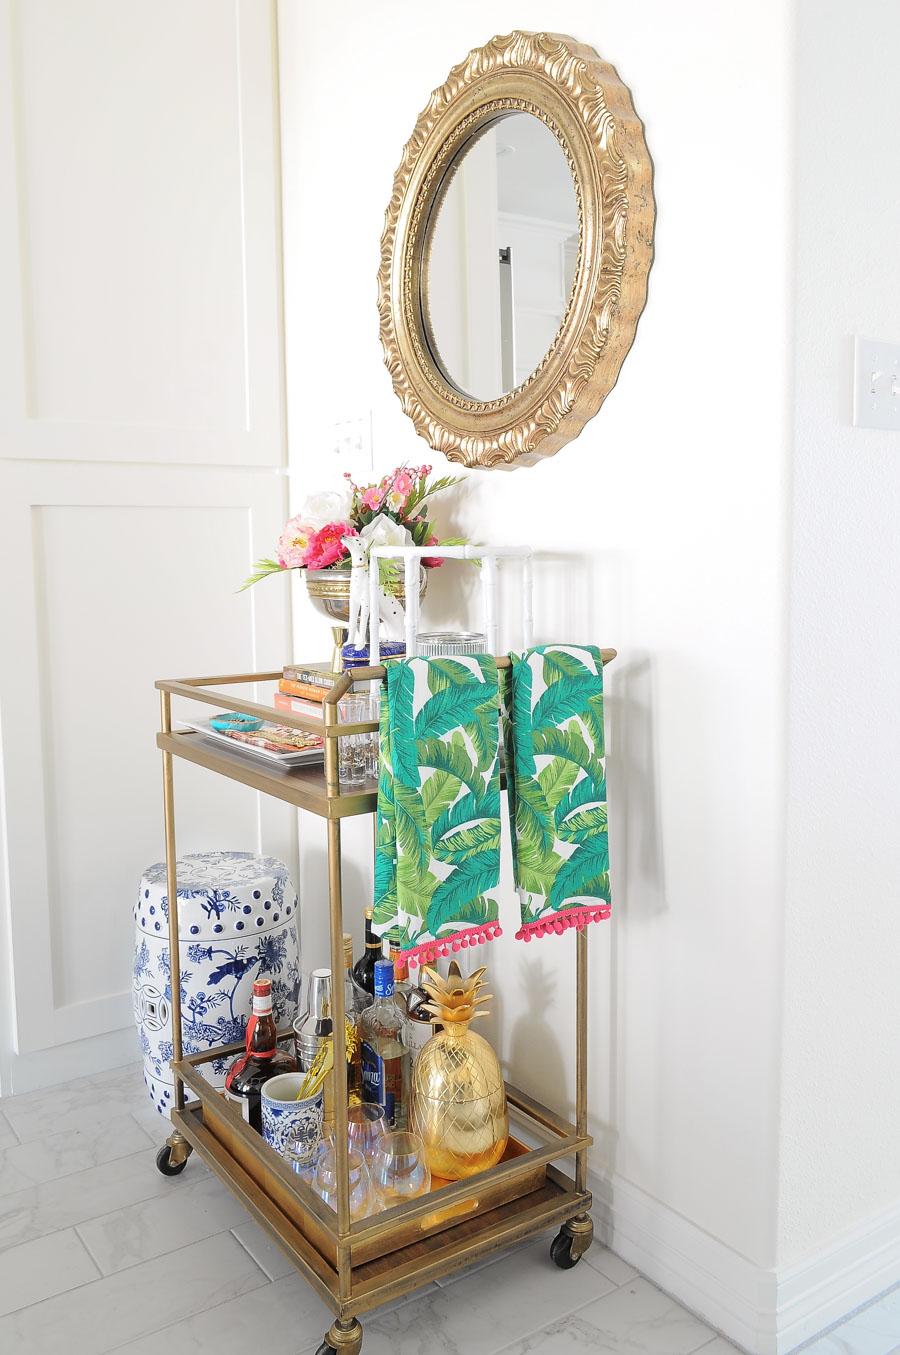 A gold bar cart looks stylish and chic for spring with touches of pink, gold, florals and chinoiserie vibes.